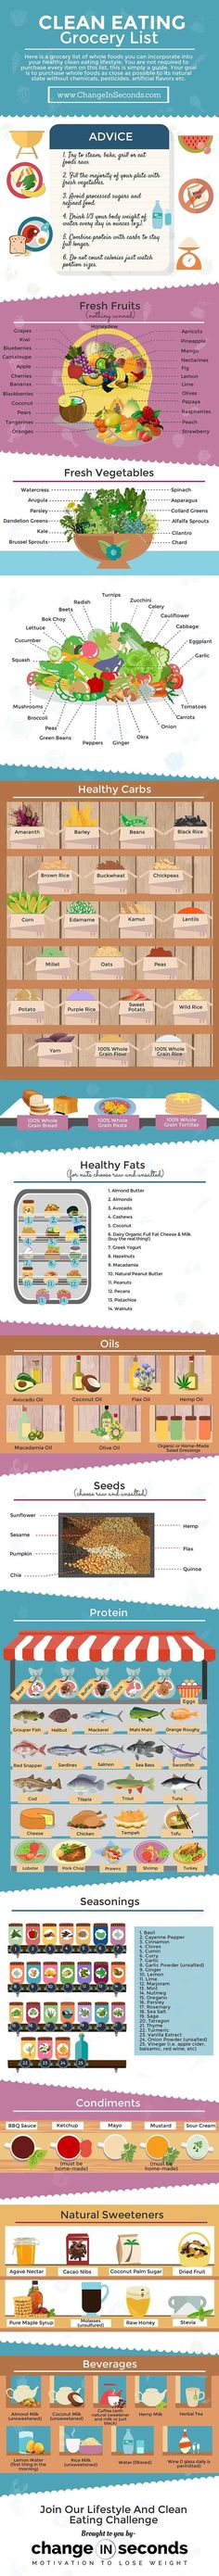 Clean Eating Grocery List For Beginners With Infographic And Free PDF, So You Can Start Your Path Towards A Healthy Eating Lifestyle.